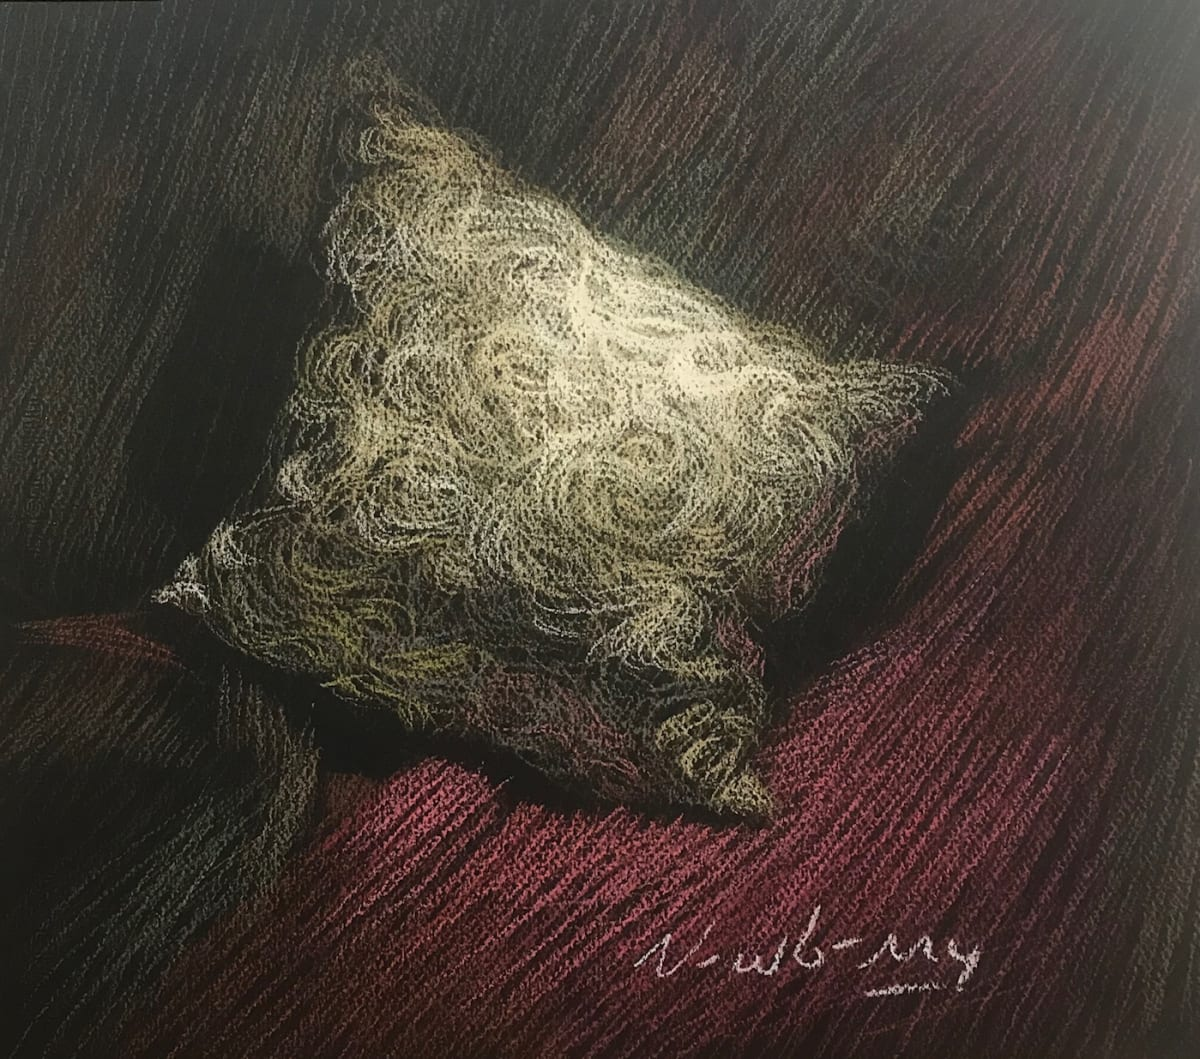 "Newberry, Pillow, 2019, pastel, 12x14"" by Michael Newberry"